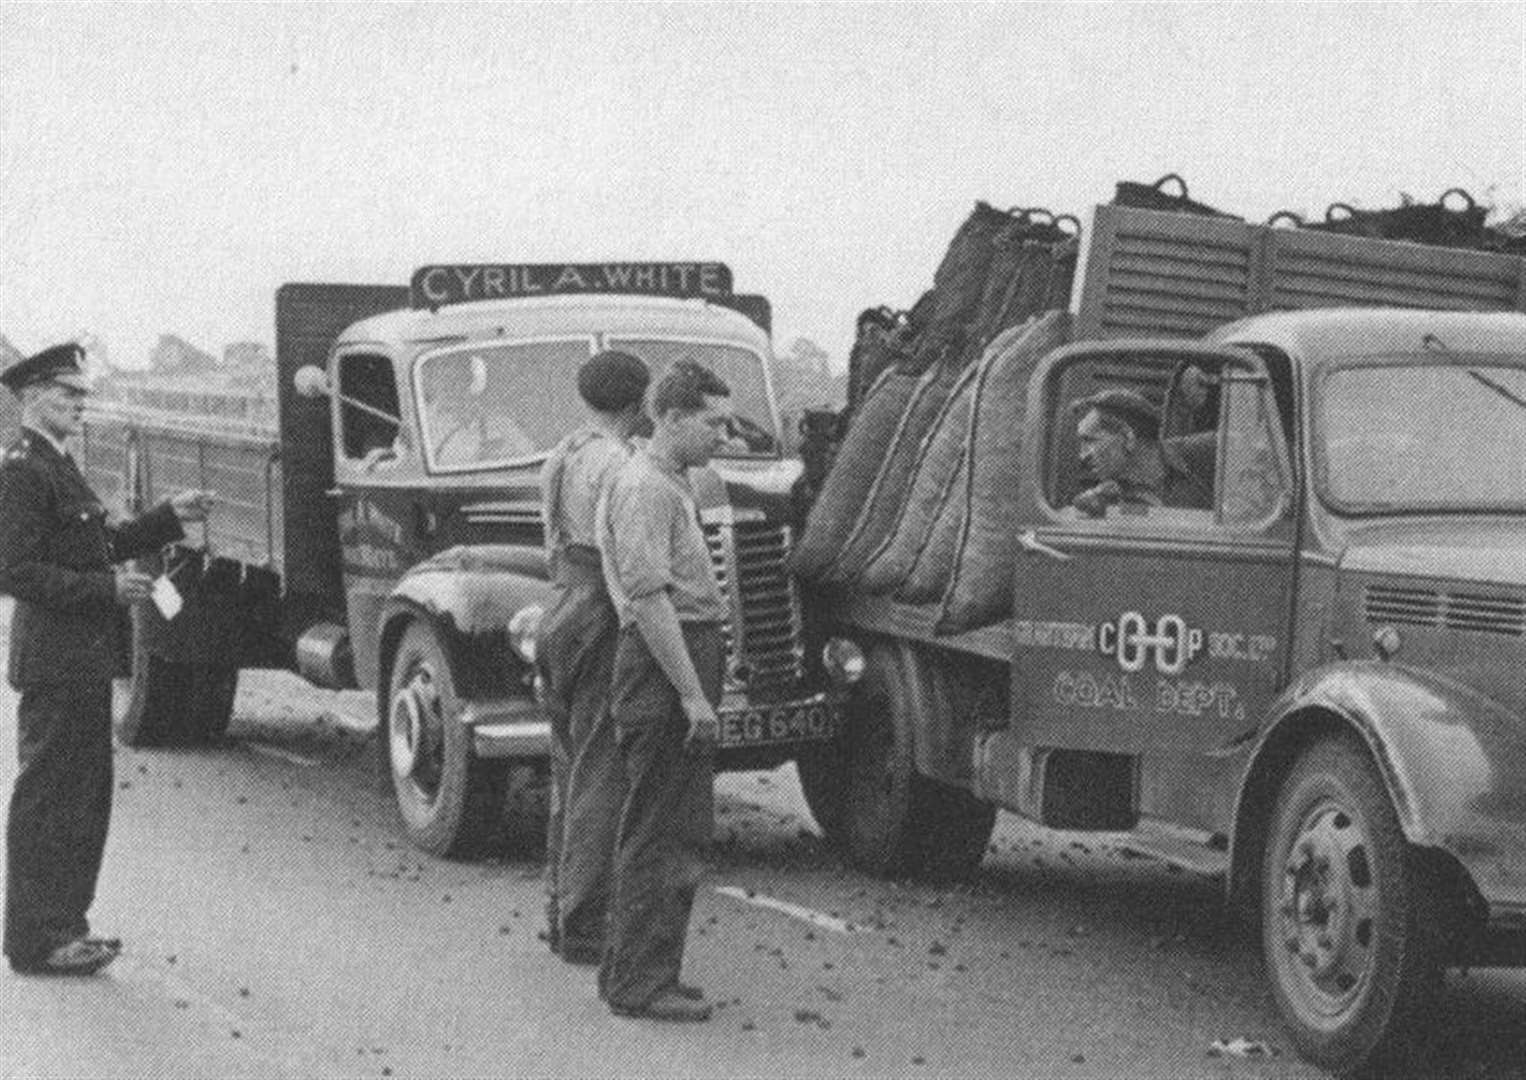 MEMORY LANE: Lorries crashed in '50s, whilst new cars raced in the '60s